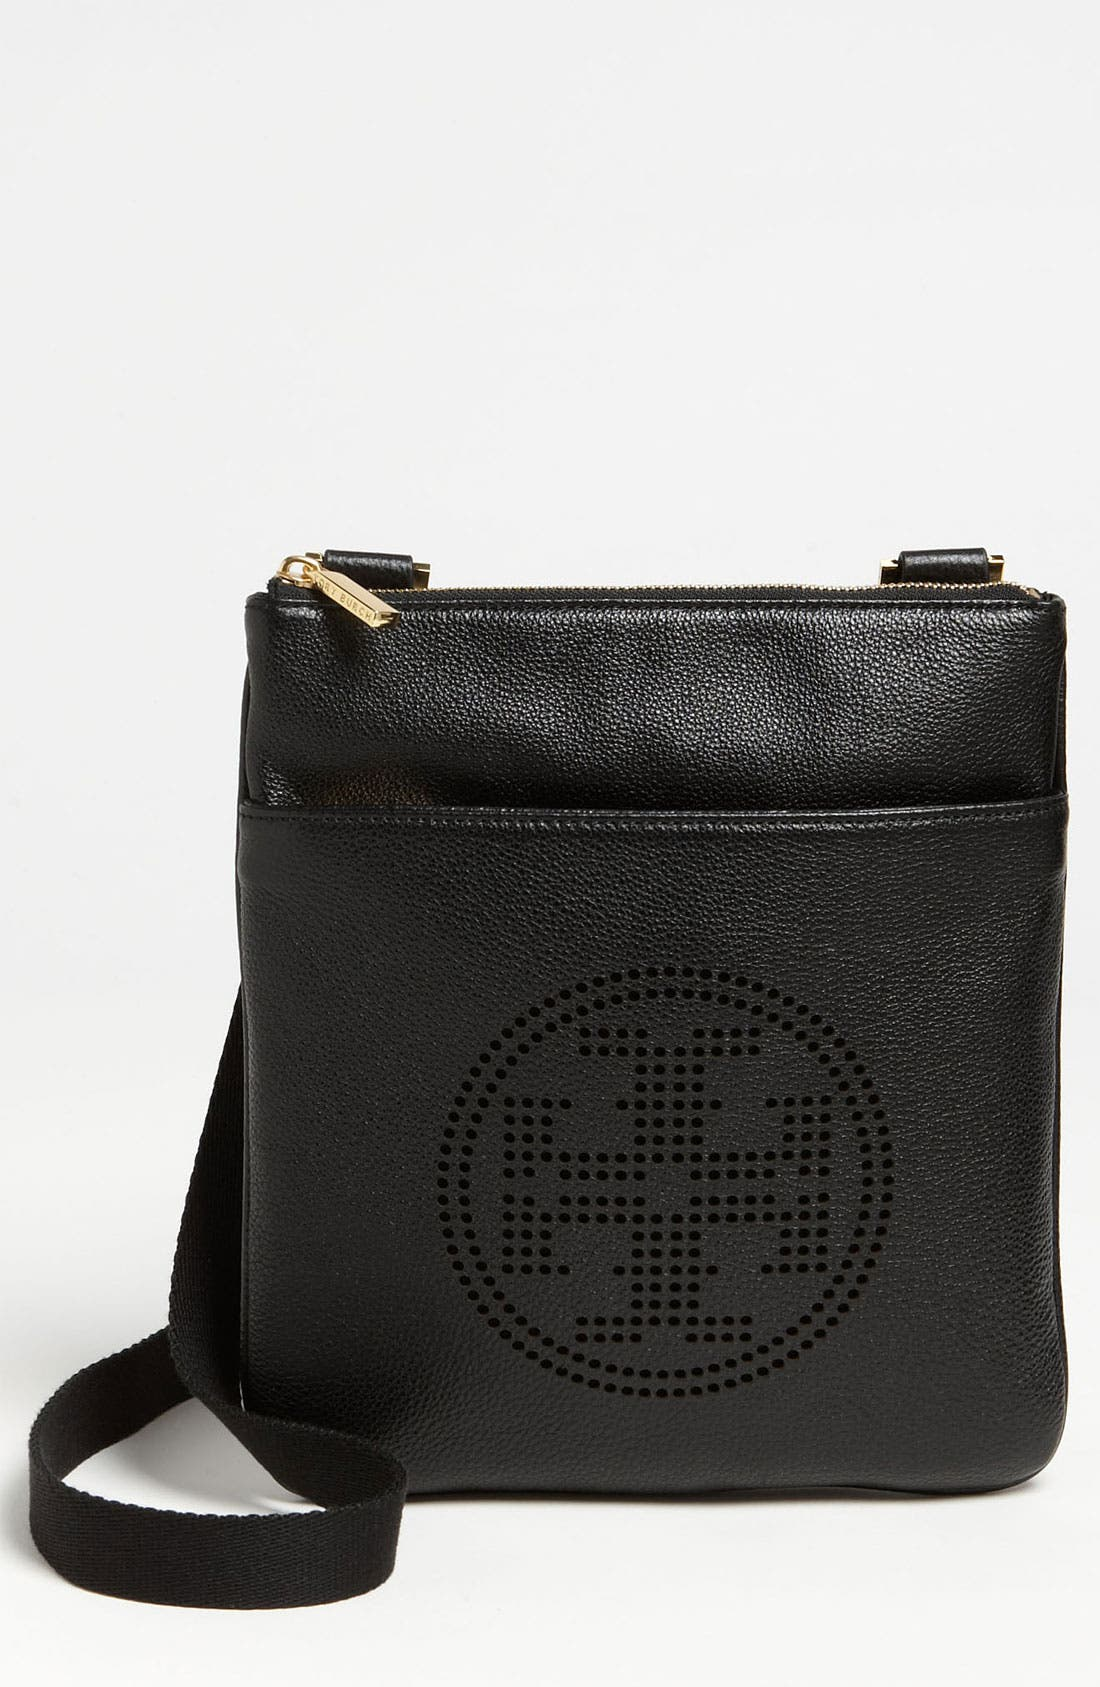 Alternate Image 1 Selected - Tory Burch Perforated Logo Crossbody Bag